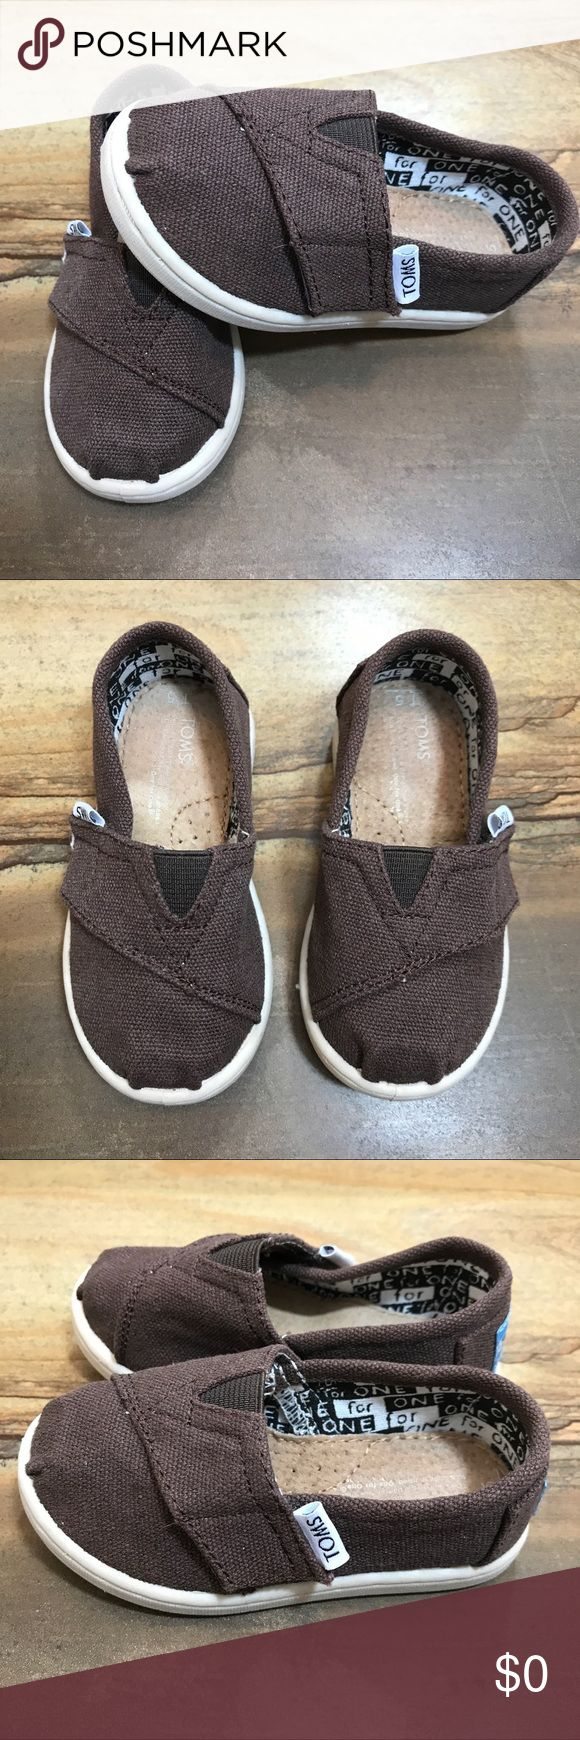 Tiny TOMS Dark Brown sz 4 Tiny TOMS. Dark brown. Size T4 for a toddler.  Brand new and never worn, but no tags or box. TOMS Shoes Baby & Walker